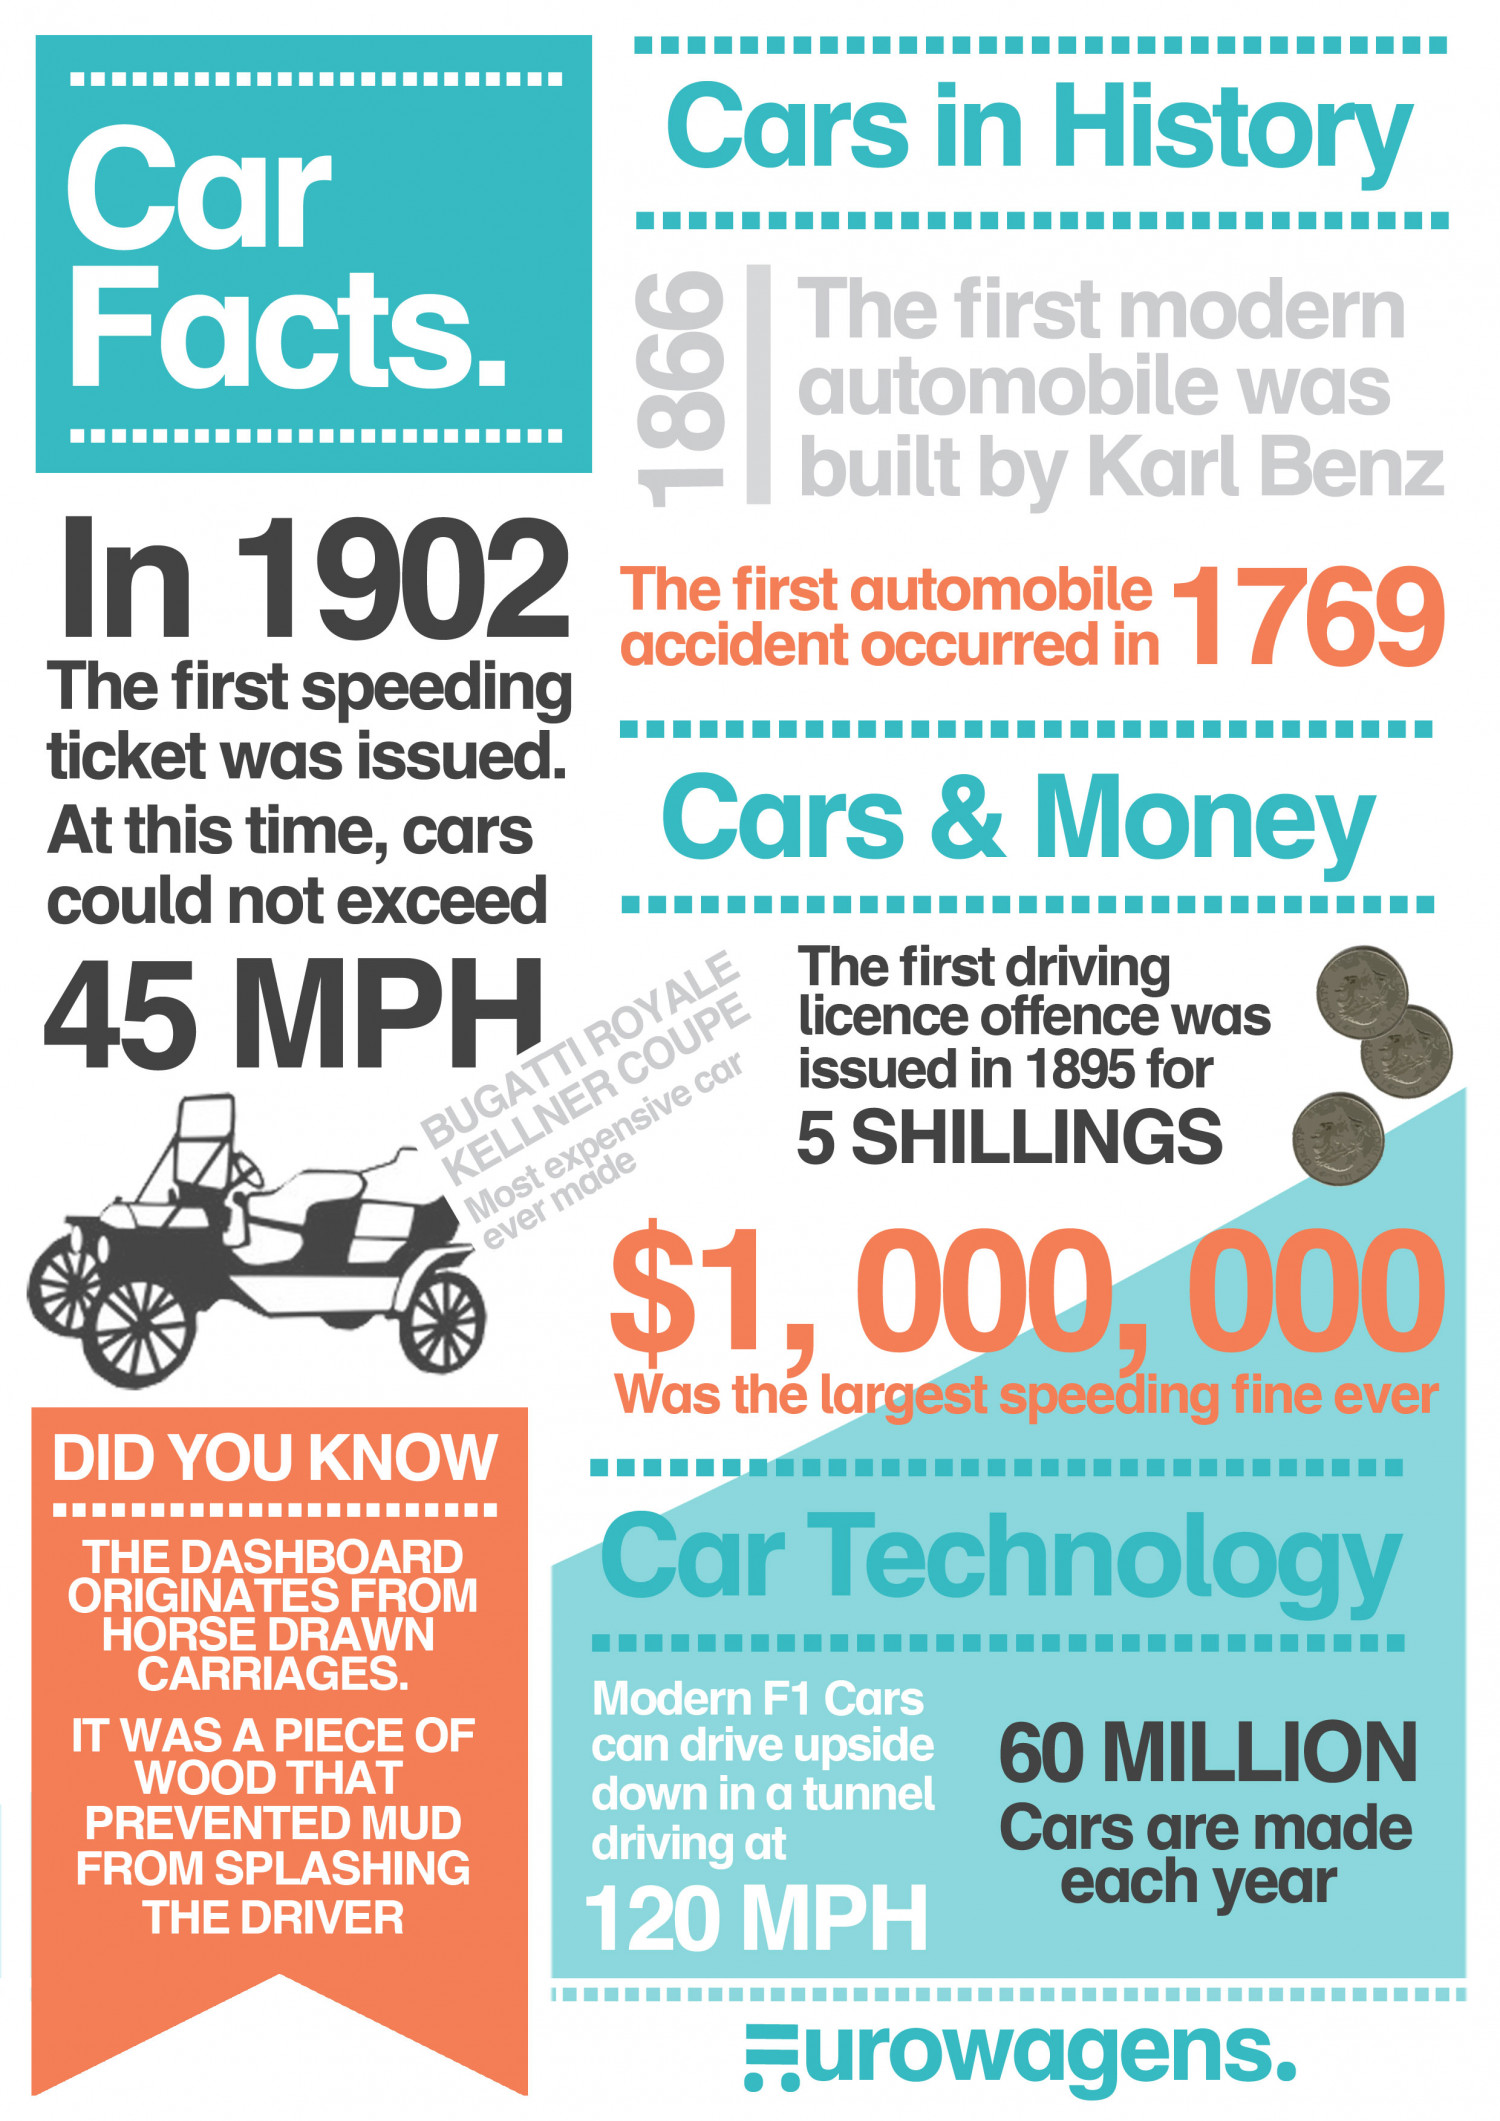 Car Facts Infographic